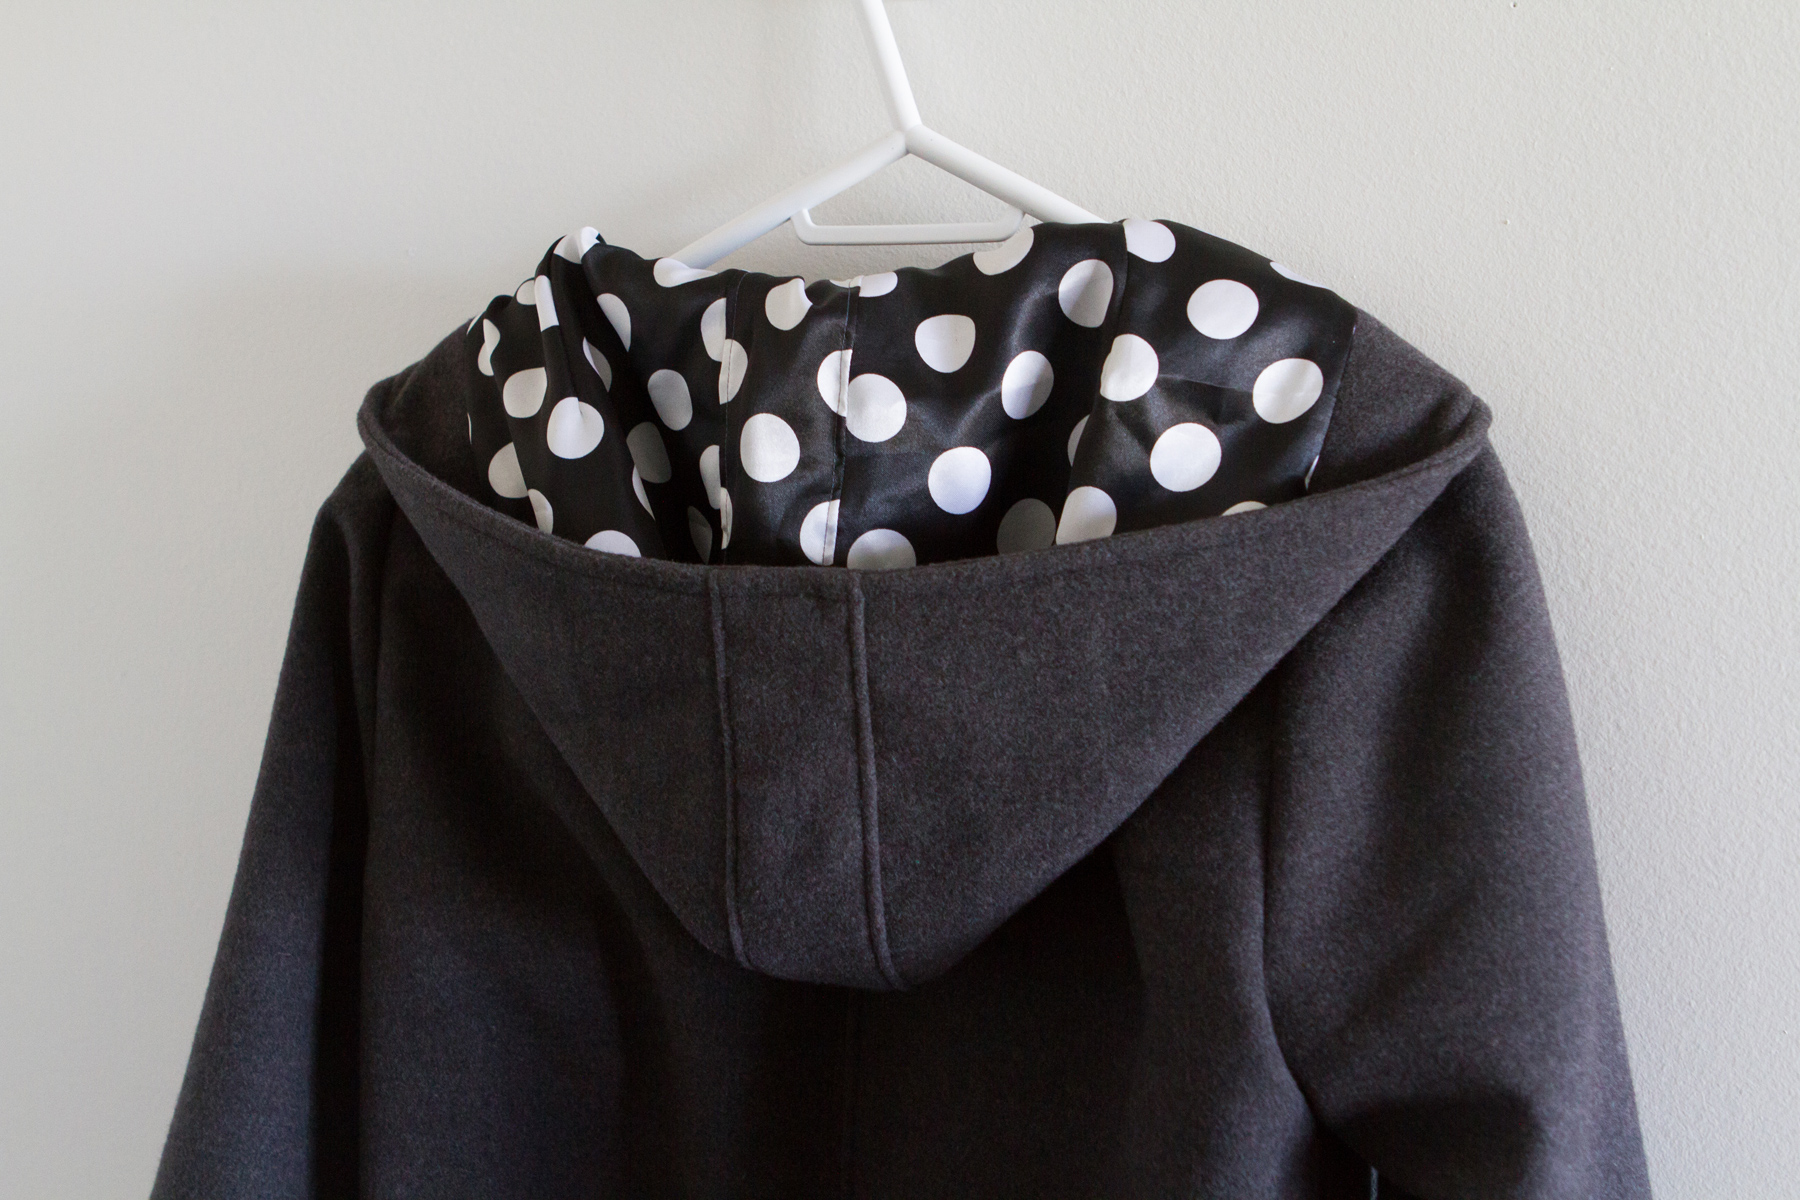 The hood has the polka dot lining too!